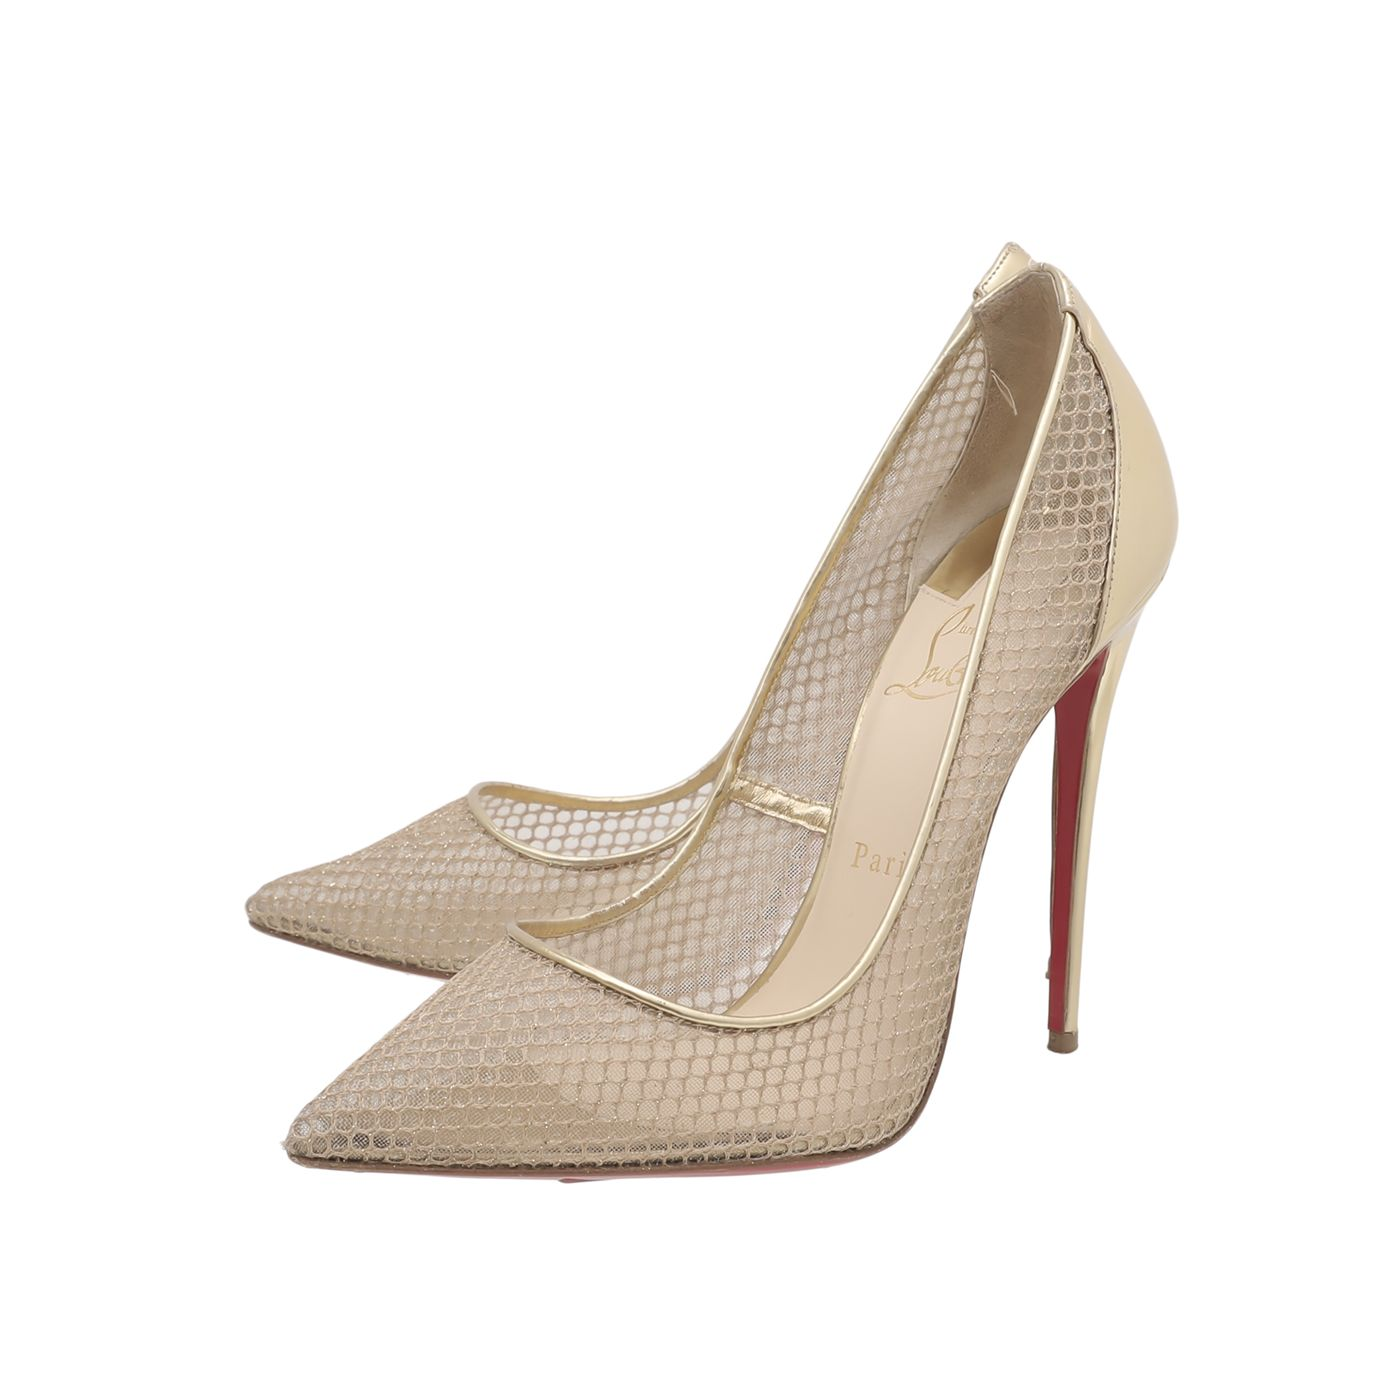 Christian Louboutin Gold Follies Resille 120 Metallic Pumps 40.5